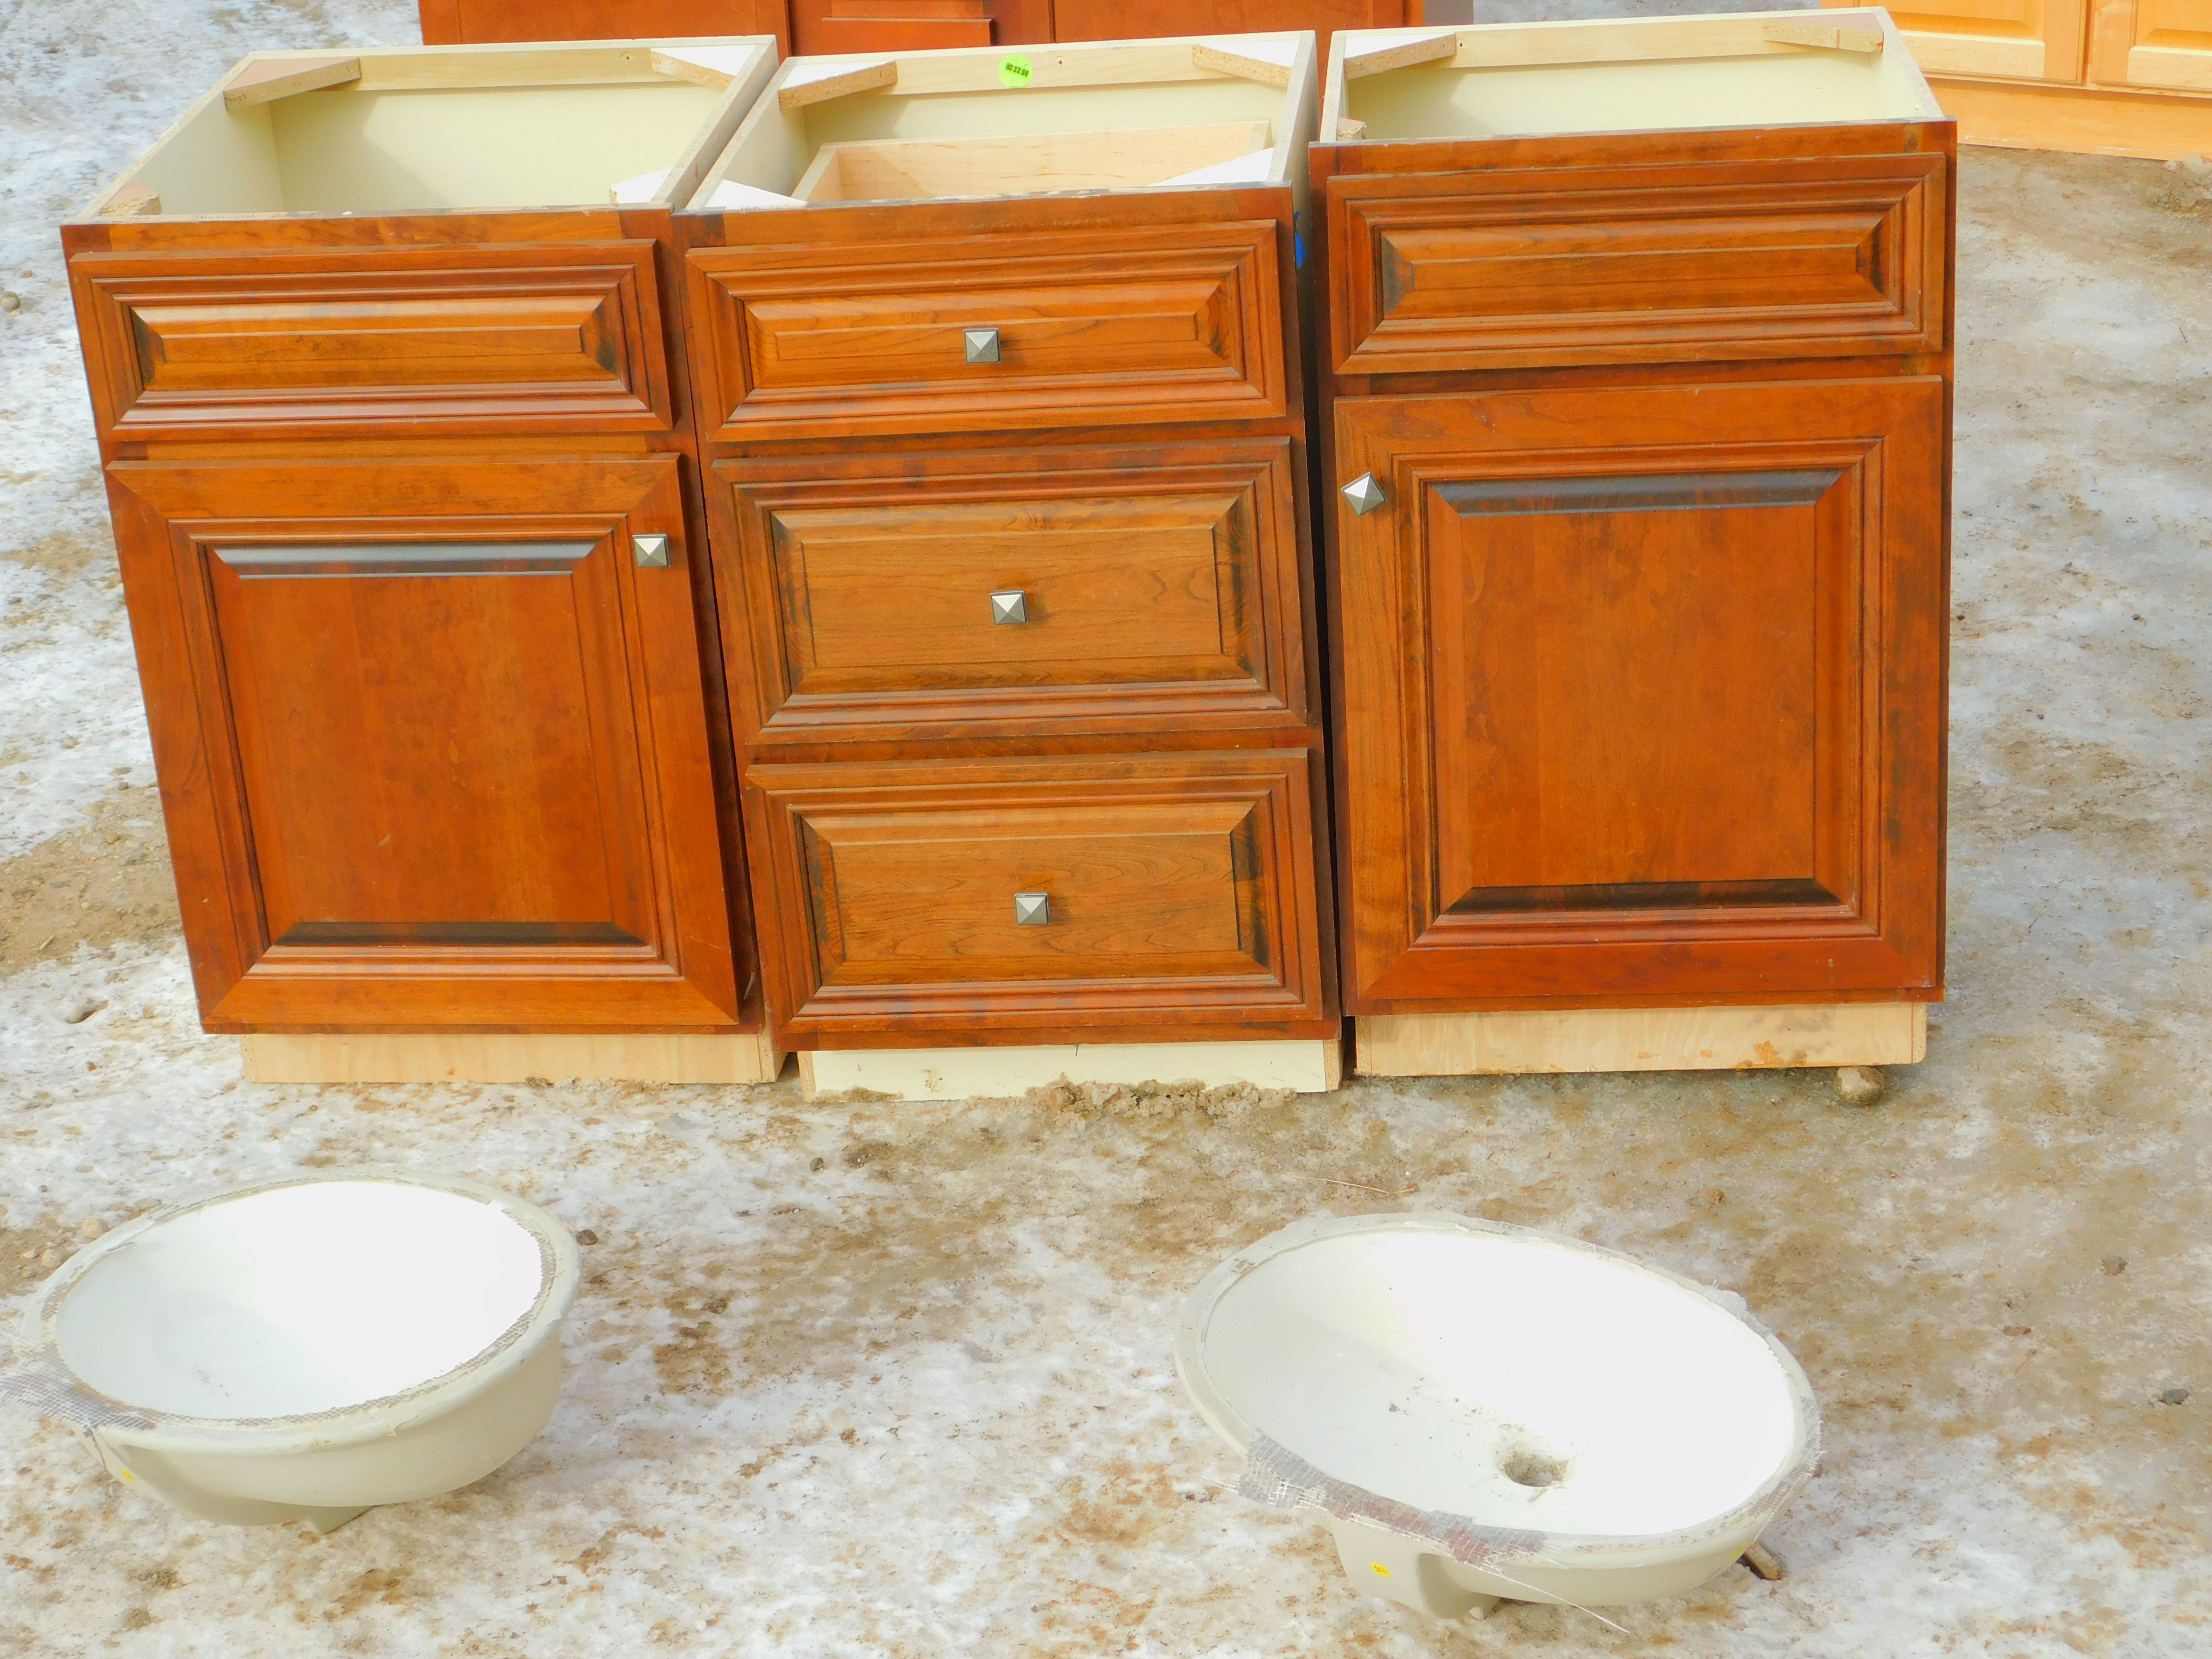 Recycled Quality Kitchen Cabinets Ben S Repurposed Cabinetry Quality Kitchen Cabinets Affordable Cabinets Used Kitchen Cabinets